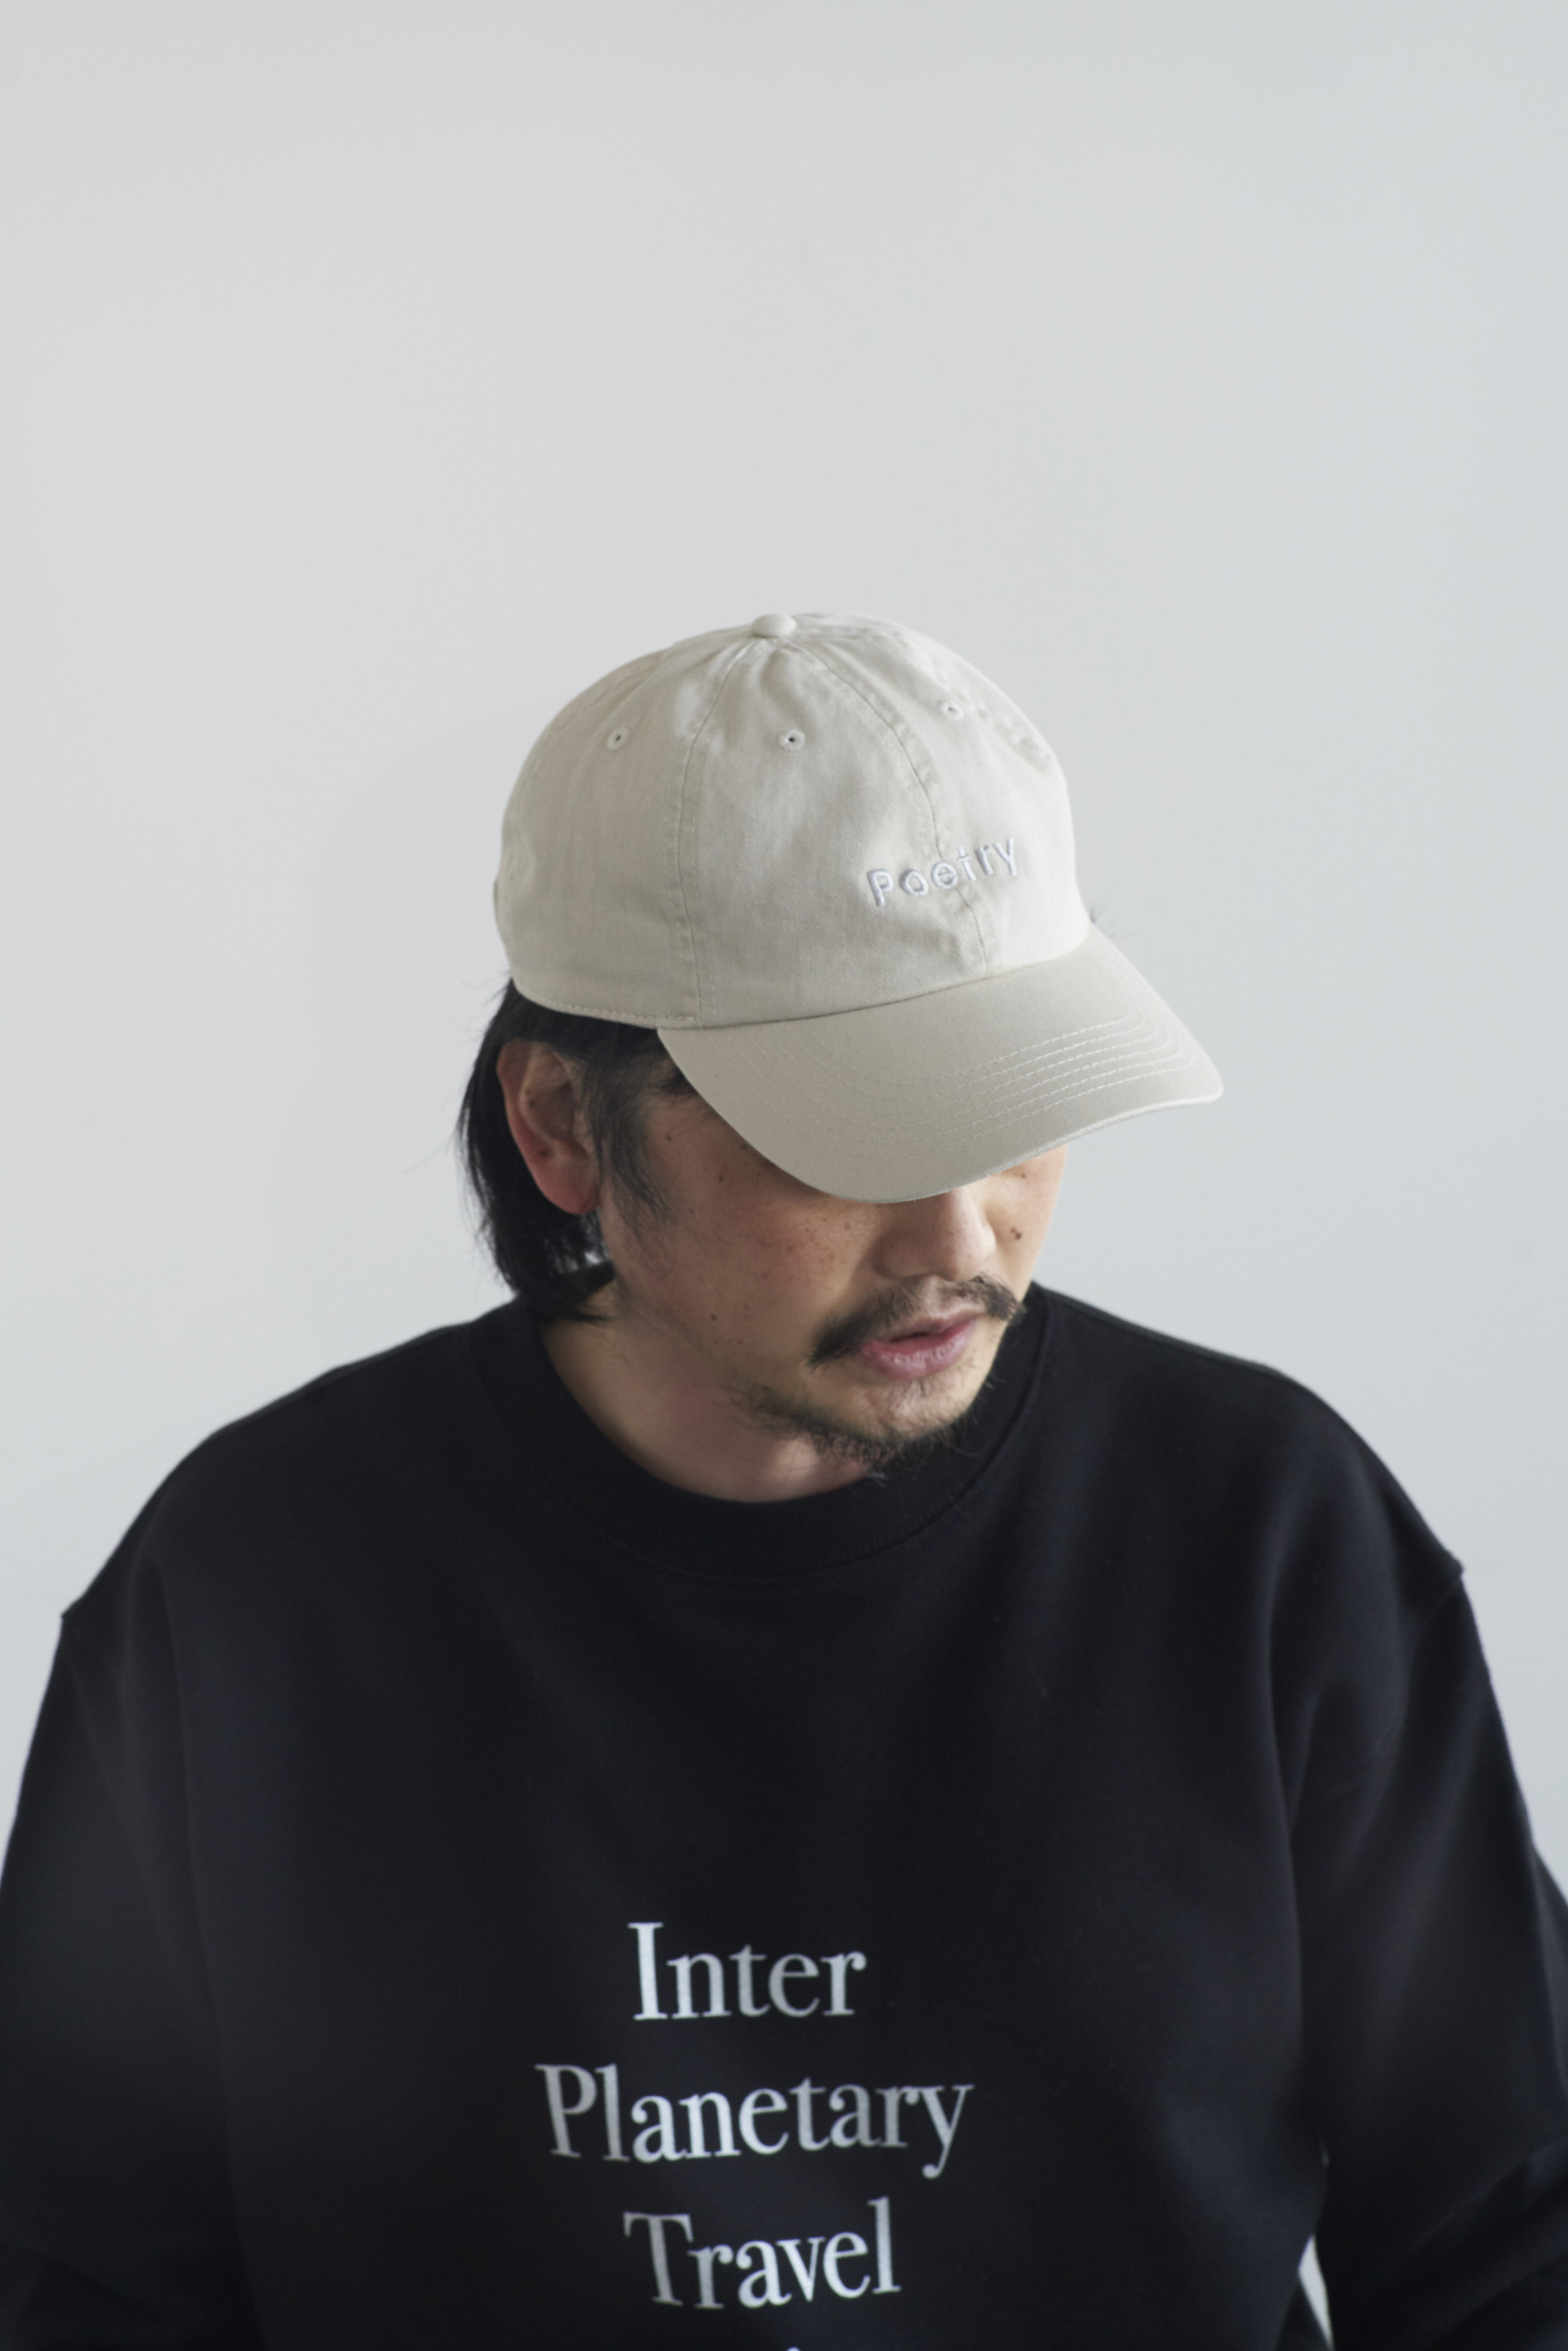 POET MEETS DUBWISE Poetry Embroidery Cap